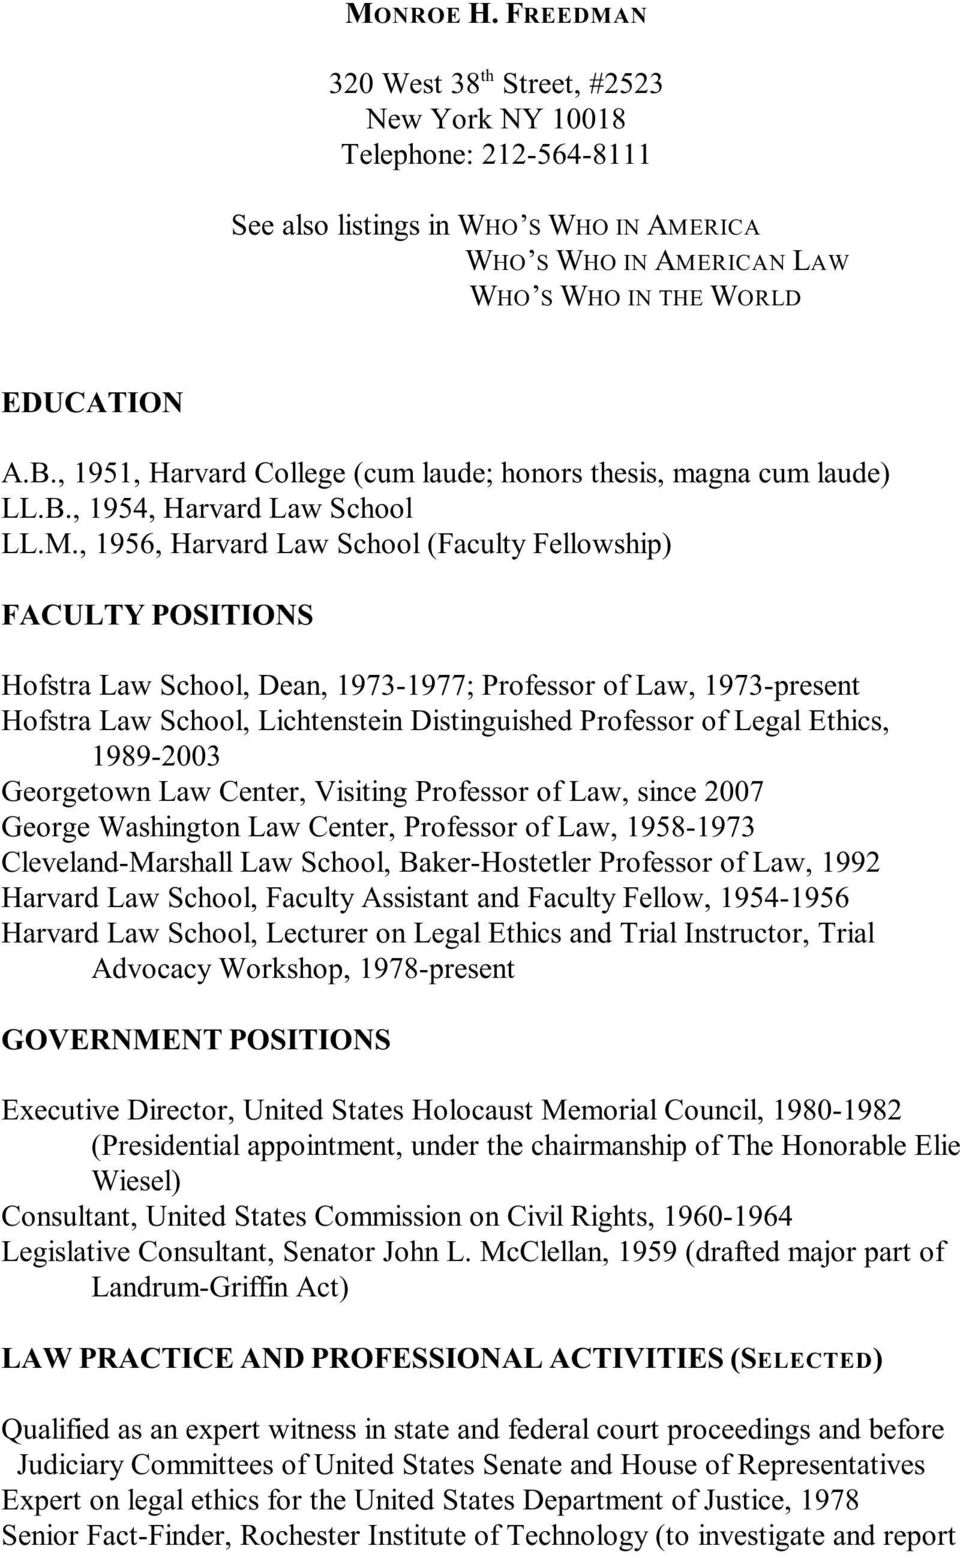 , 1956, Harvard Law School (Faculty Fellowship) FACULTY POSITIONS Hofstra Law School, Dean, 1973-1977; Professor of Law, 1973-present Hofstra Law School, Lichtenstein Distinguished Professor of Legal